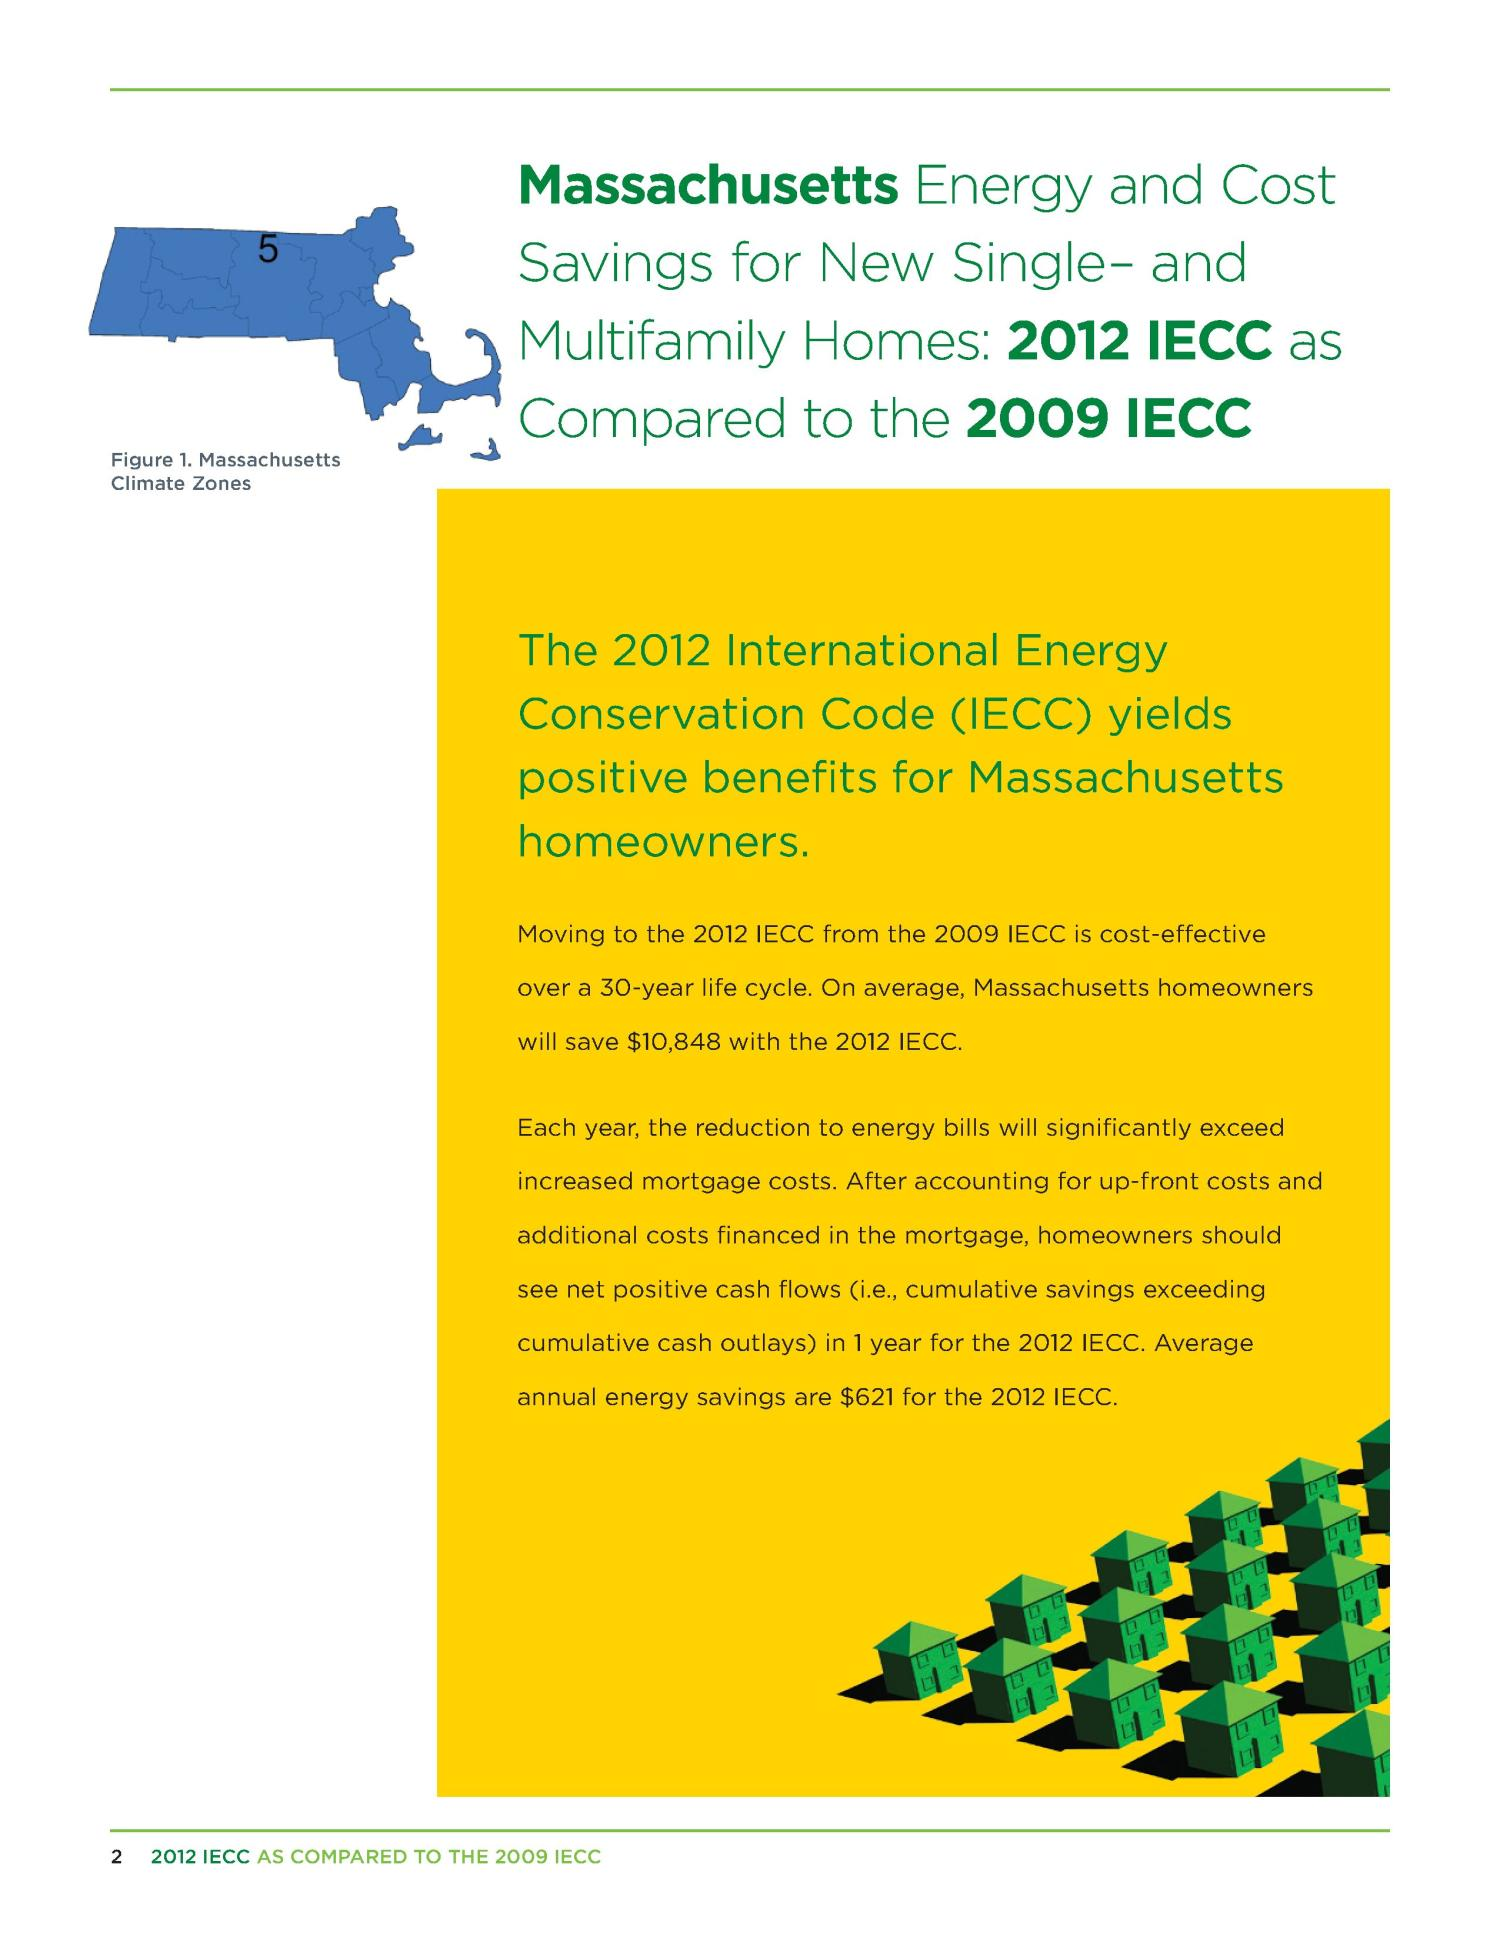 Massachusetts Energy and Cost Savings for New Single- and Multifamily Homes: 2012 IECC as Compared to the 2009 IECC                                                                                                      [Sequence #]: 2 of 13